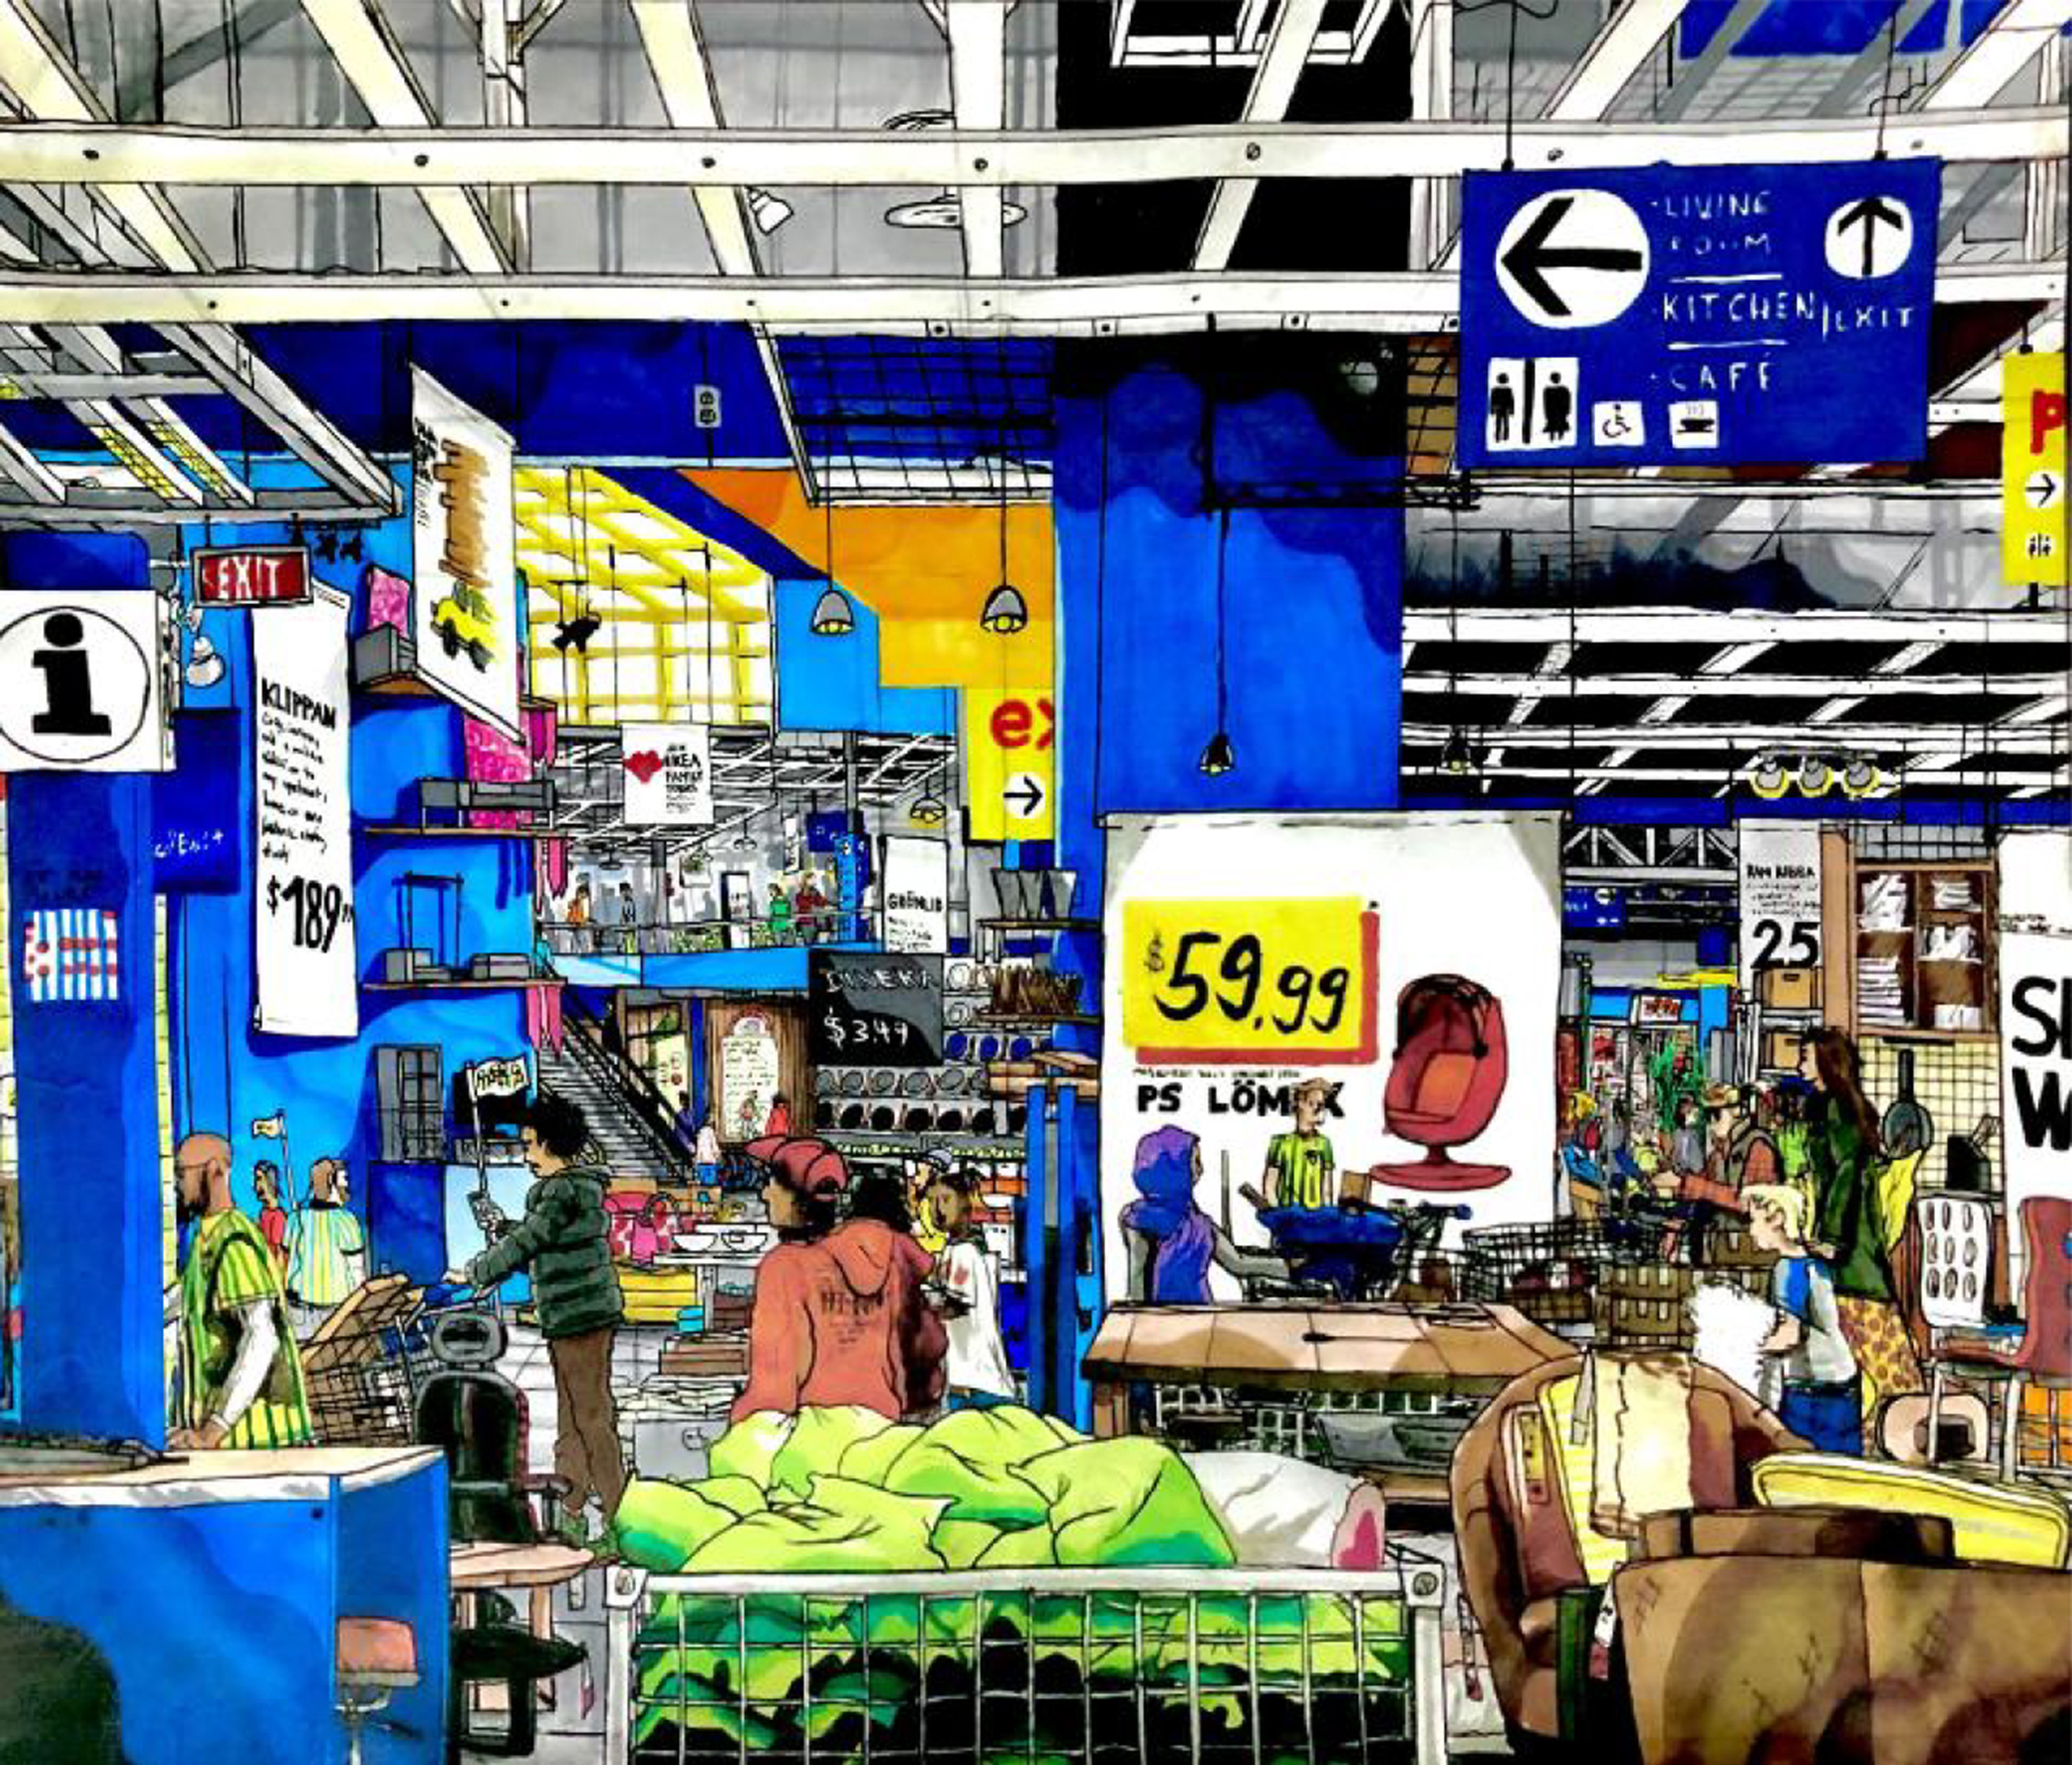 Colorful illustration of people shopping in an Ikea store